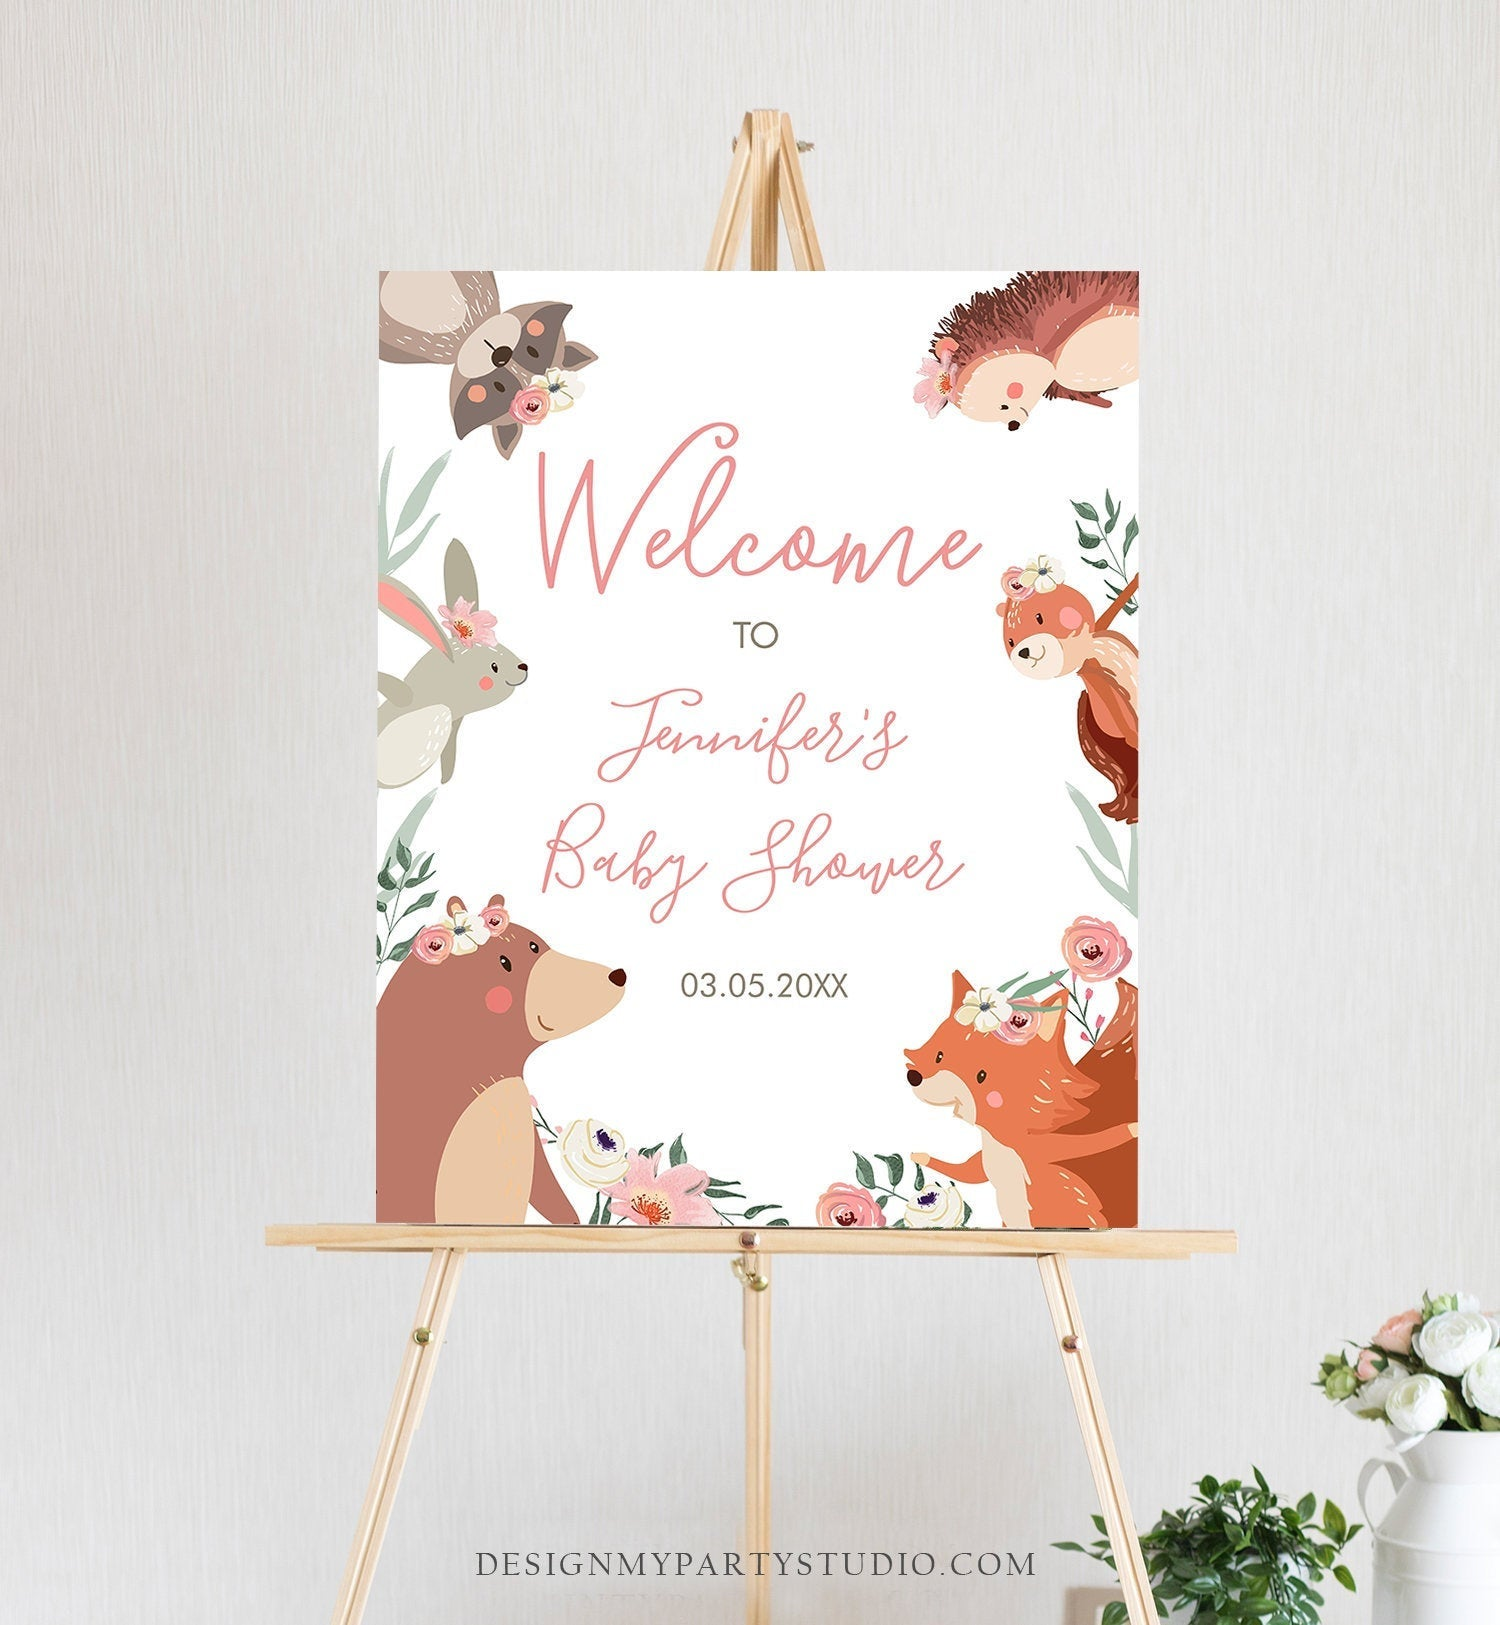 Editable Woodland Welcome Sign Woodland Baby Shower Welcome Girl Rustic Floral Boho Forest Animals Birthday Corjl Template PRINTABLE 0222